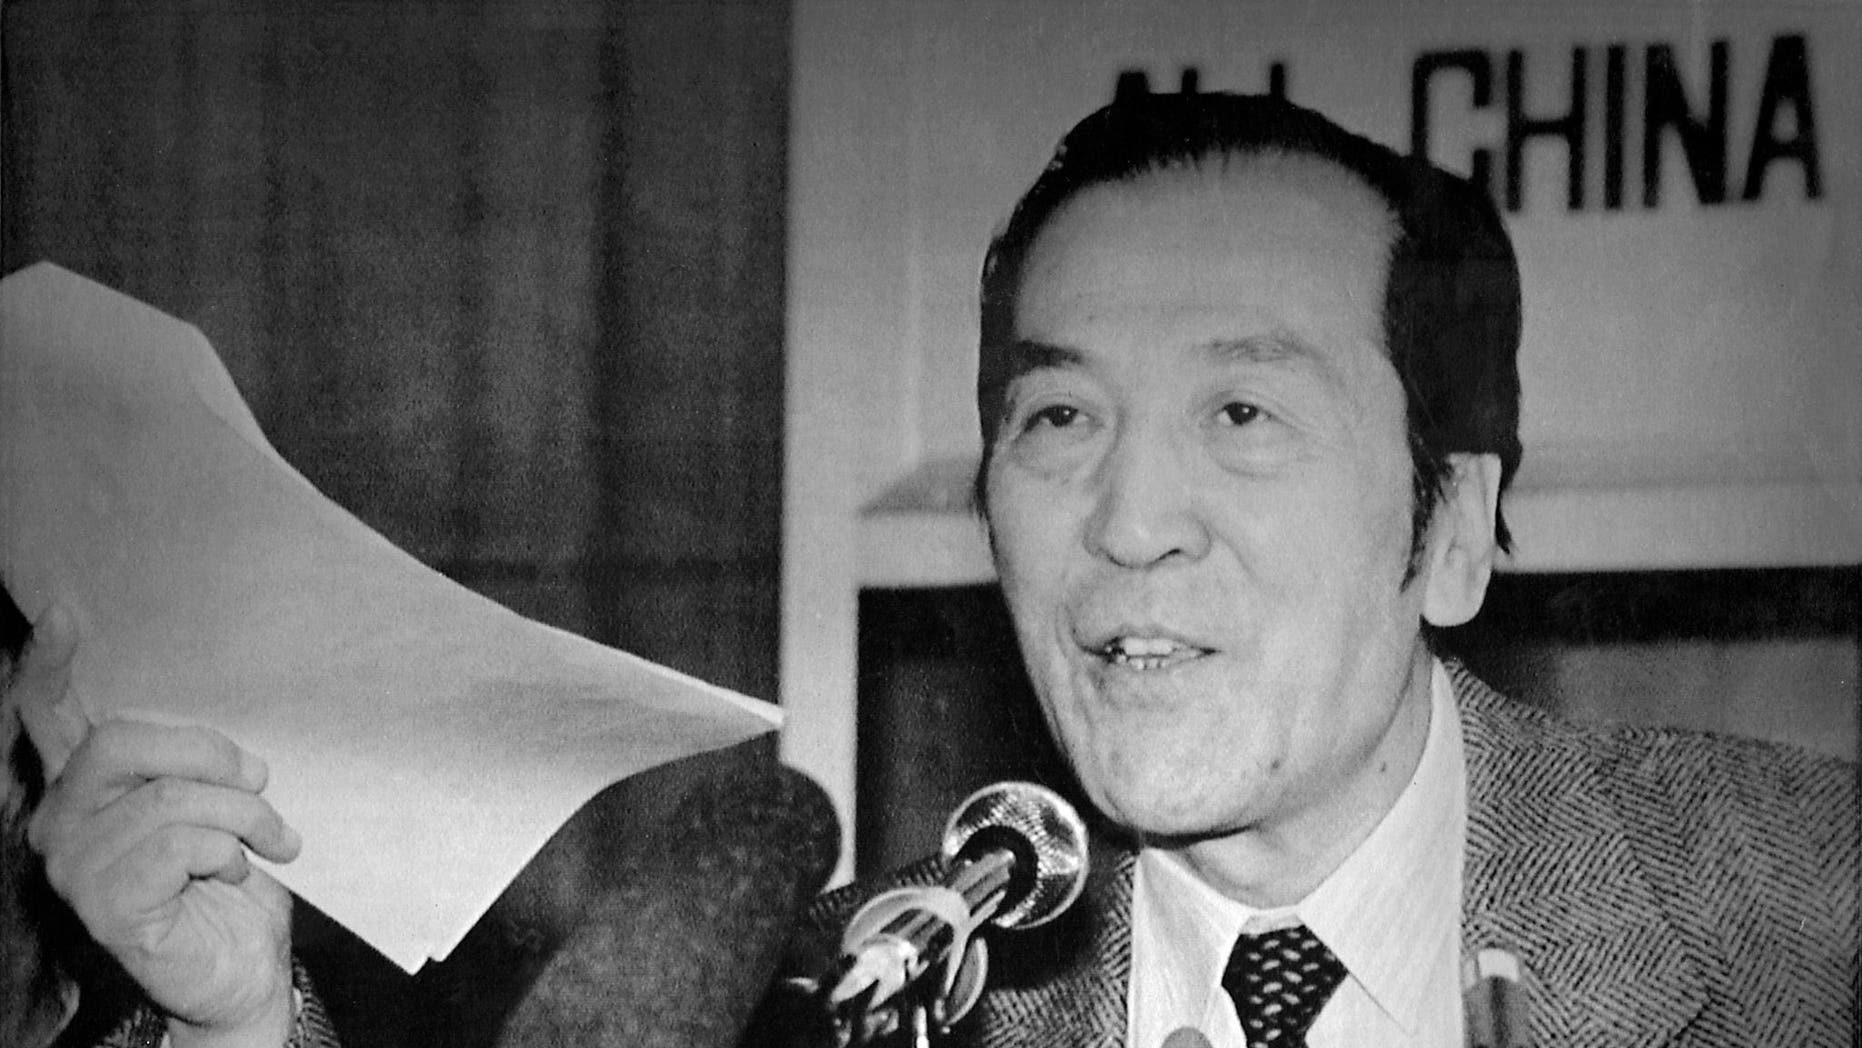 Yuan, former director of the Research Office of the State Council, passed away in Beijing due to illness at the age of 91, the Chinese state-run media announced. His funeral was reportedly held in Babaoshan, the cemetery for senior Communist figures.